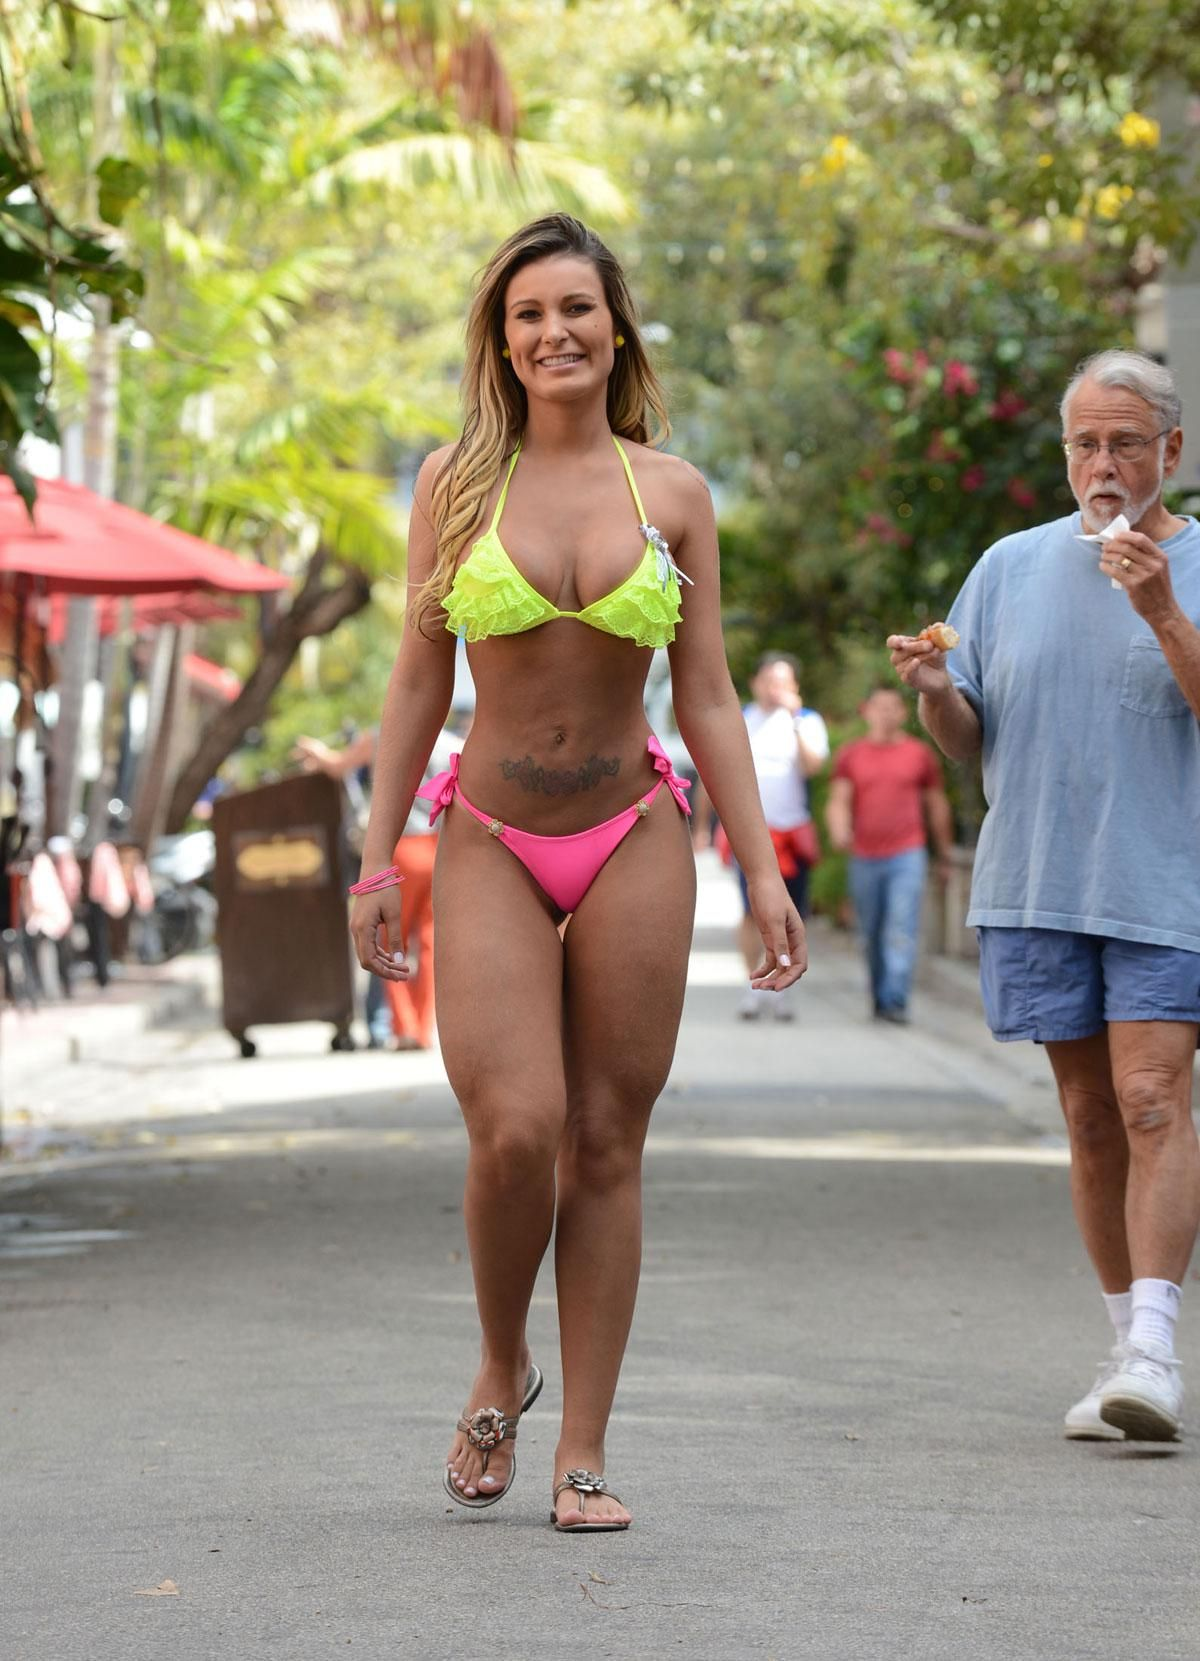 Bikini Andressa Urach nudes (16 photos), Ass, Leaked, Twitter, butt 2019